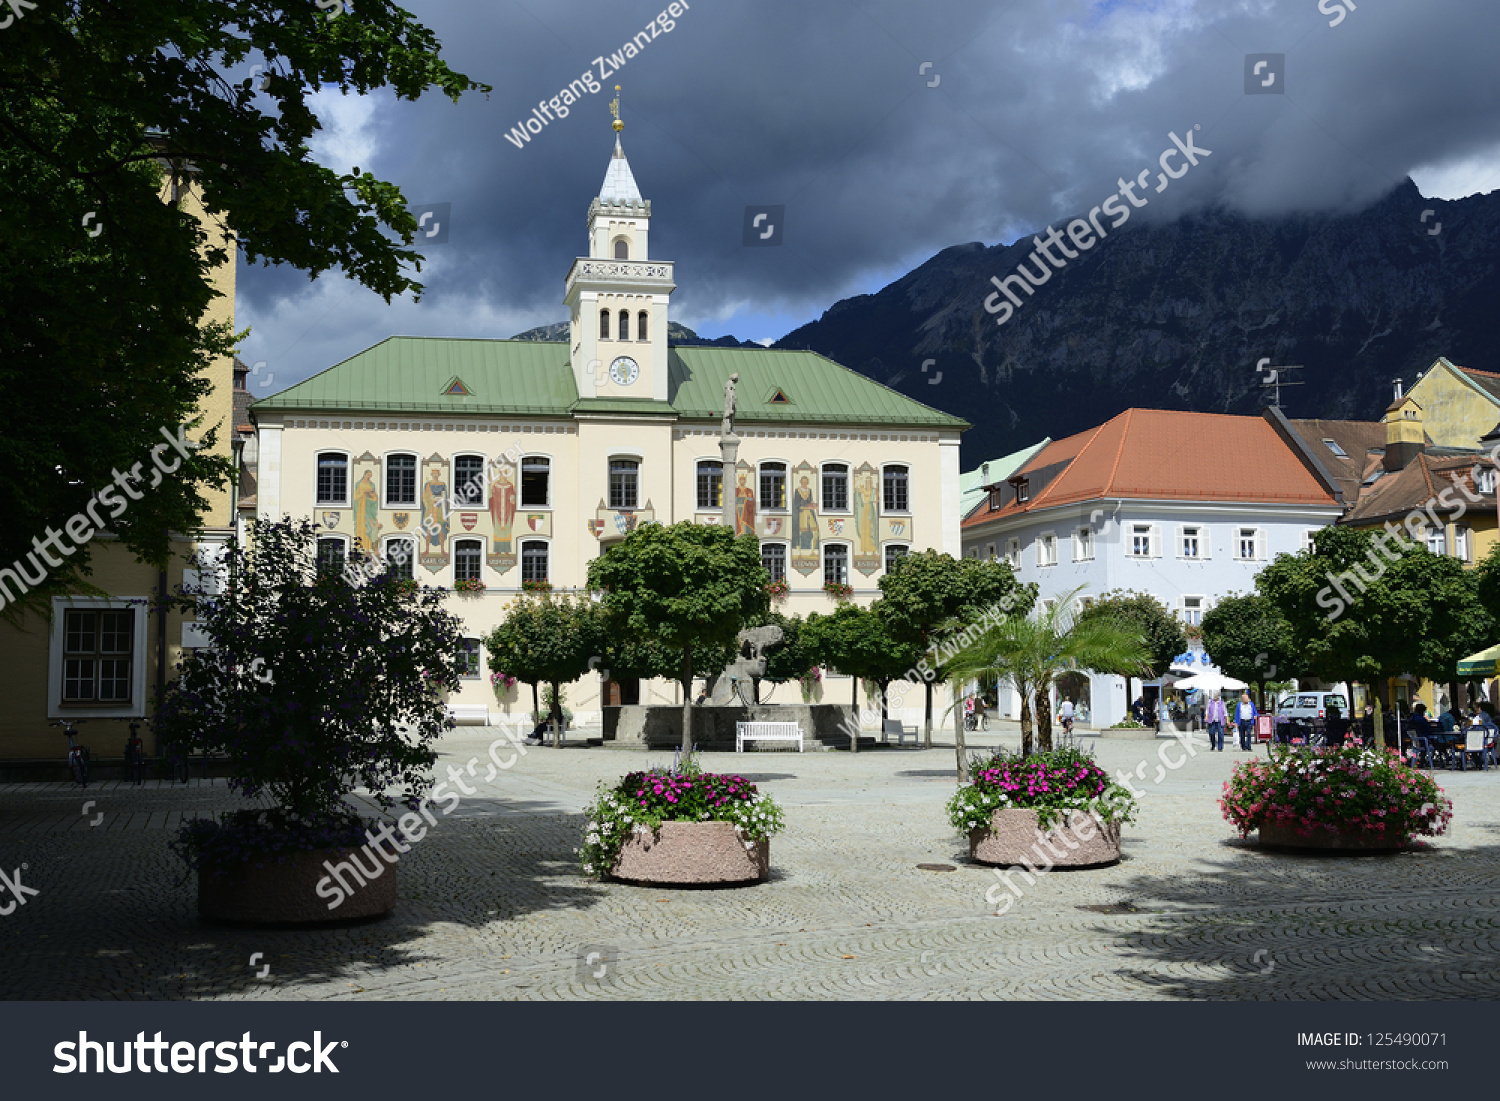 townhall bad reichenhall germany thunderclouds stock photo 125490071 shutterstock. Black Bedroom Furniture Sets. Home Design Ideas